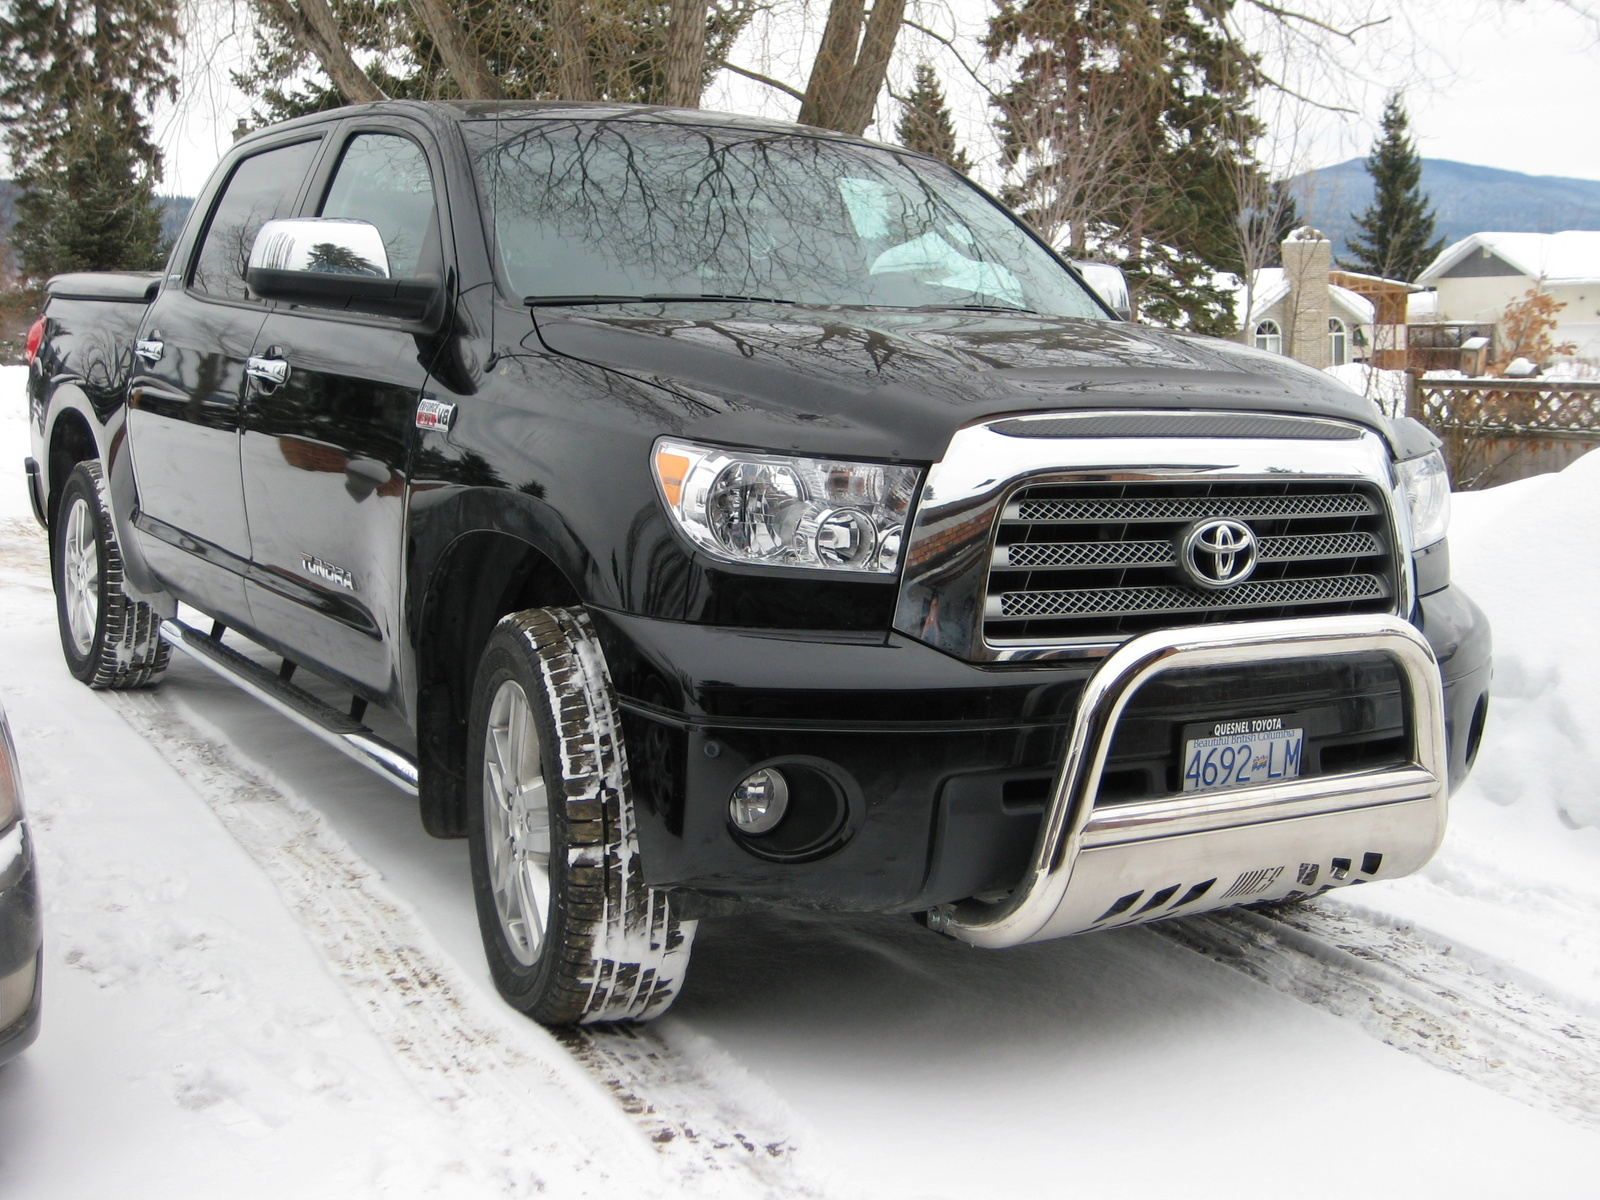 2007 toyota tundra pictures cargurus. Black Bedroom Furniture Sets. Home Design Ideas